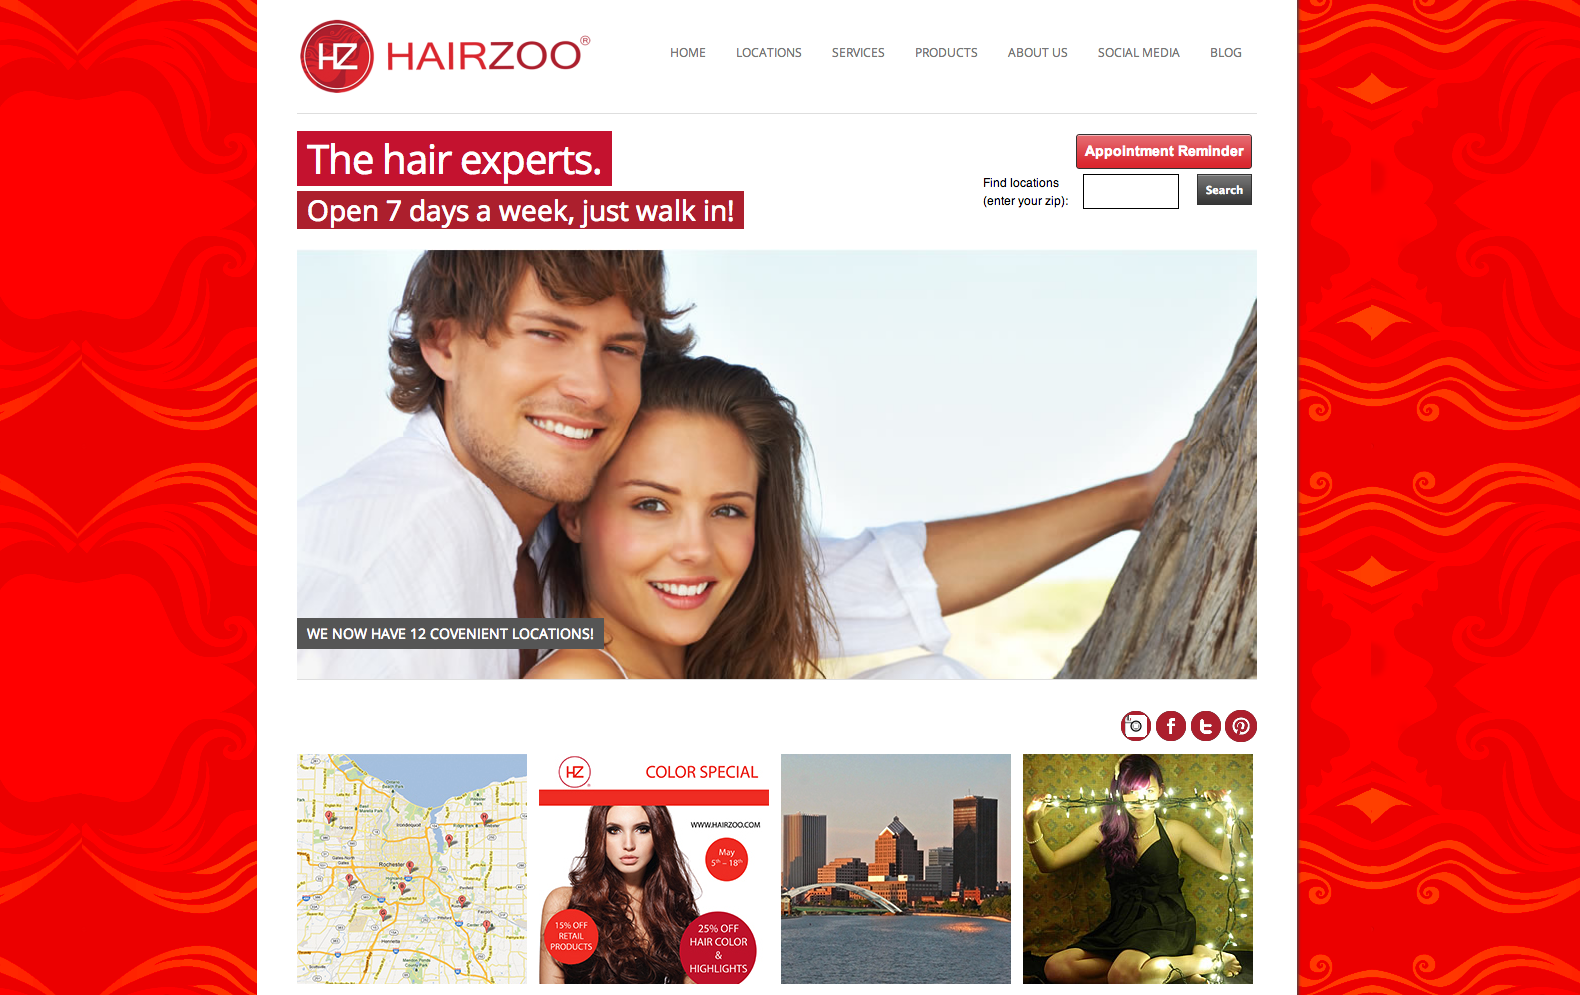 Welcome to the new Hairzoo website